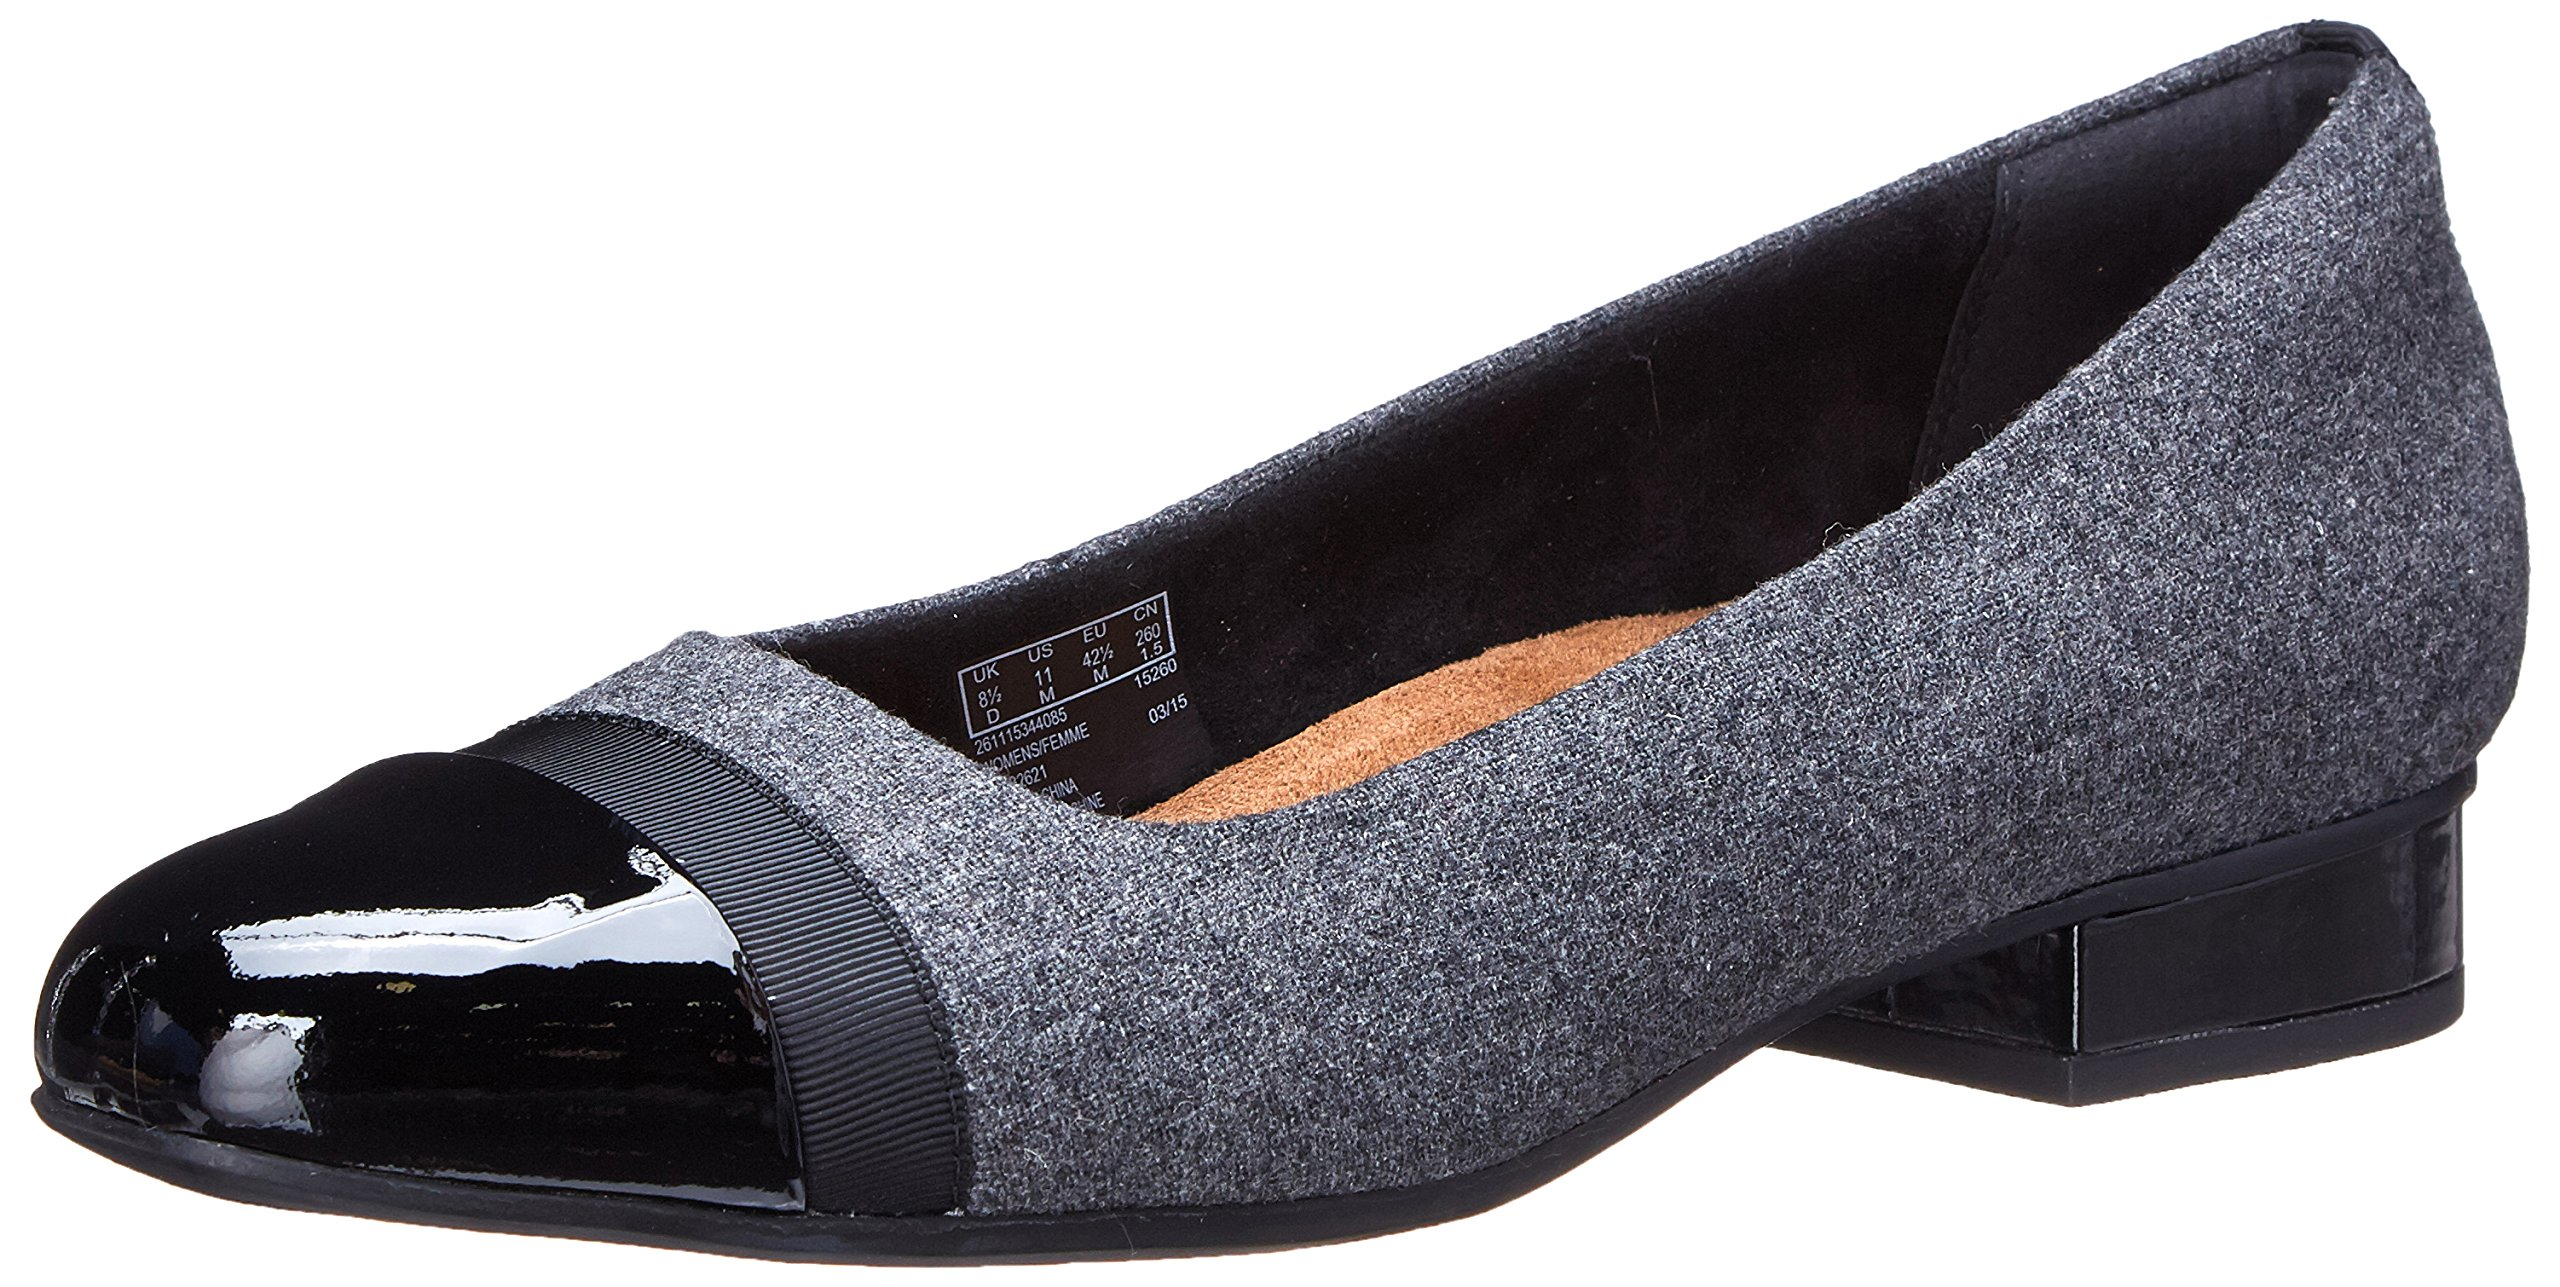 CLARKS Women's Keesha Rosa Flat, Grey Synthetic Fabric, 5.5 M US by CLARKS